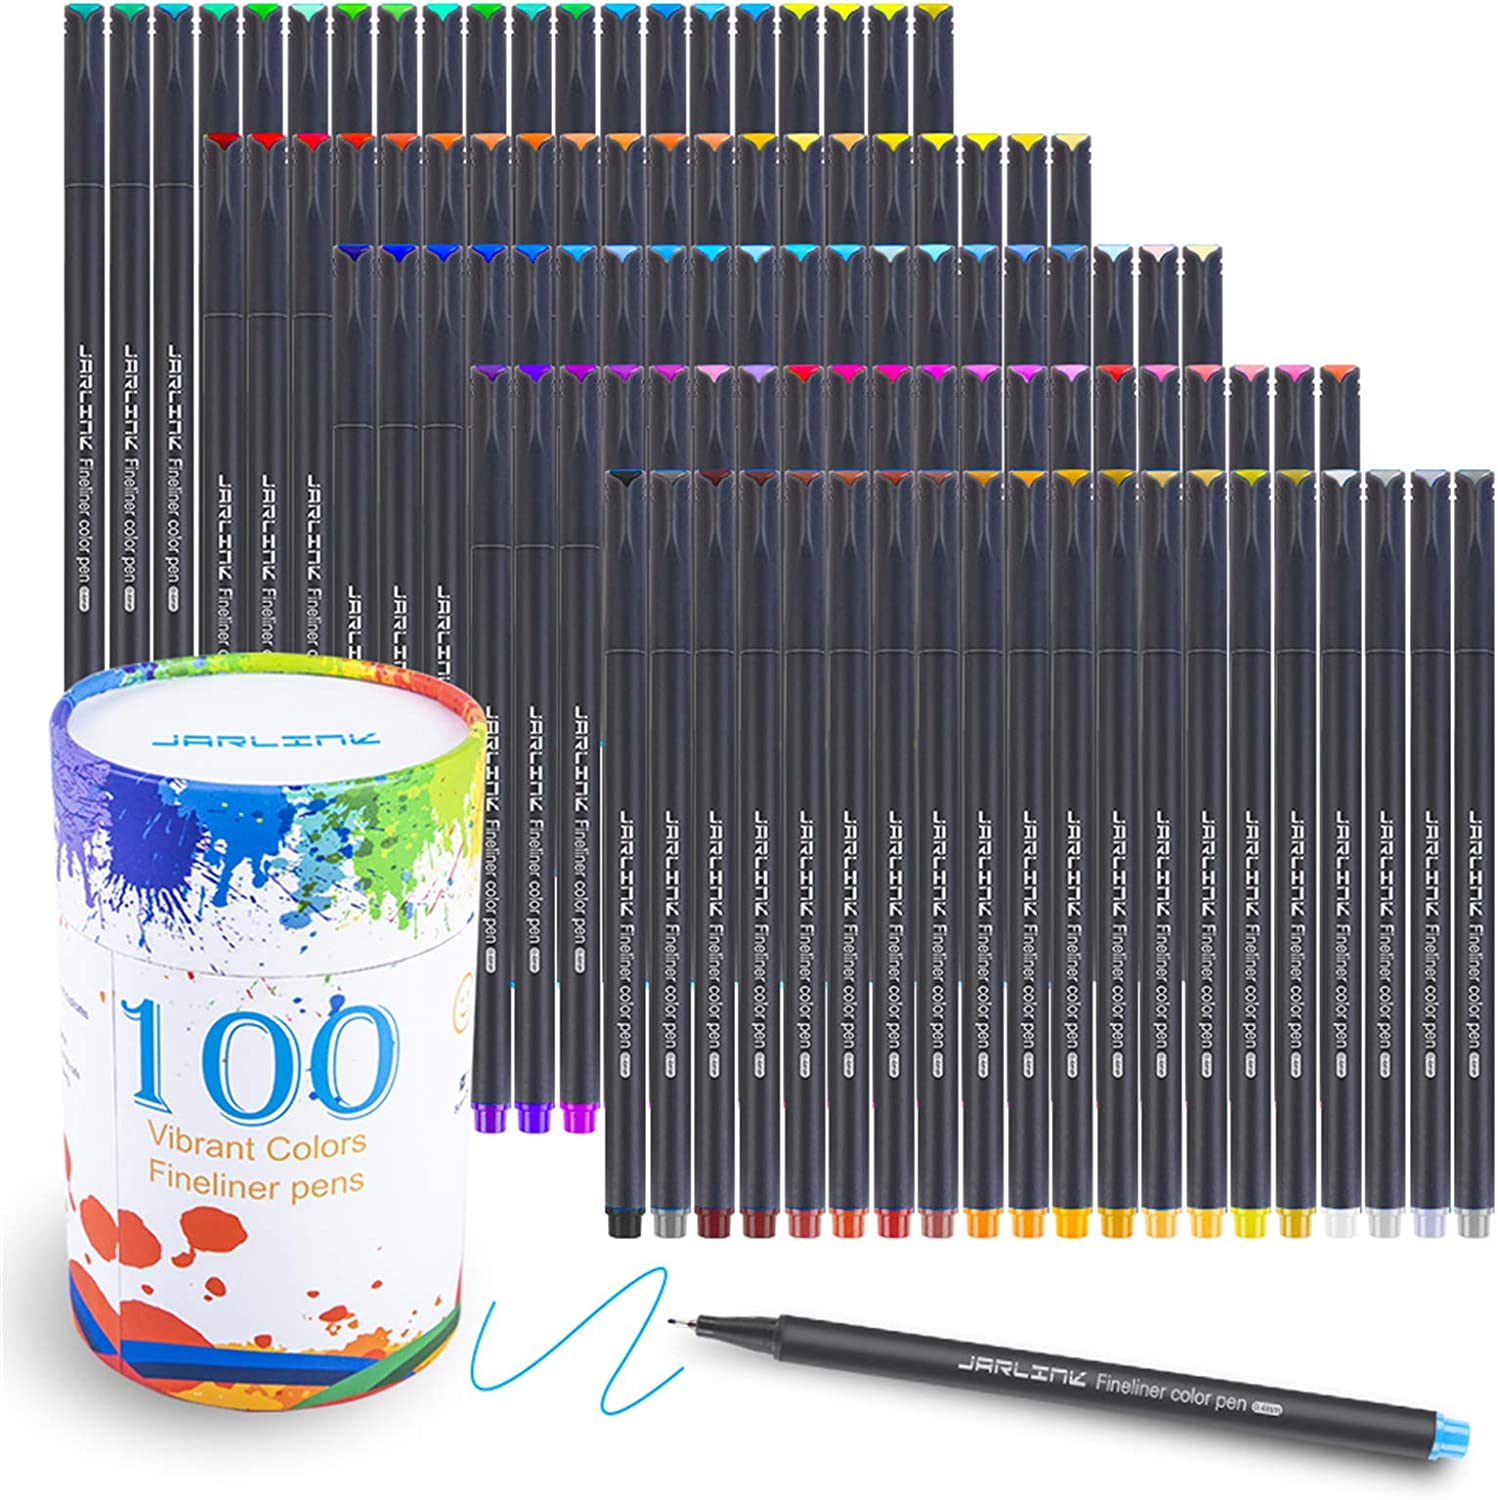 JARLINK 100 Colors Journal Planner Pens, Fine Point Fineliner Markers for Journaling Writing Office Supplies